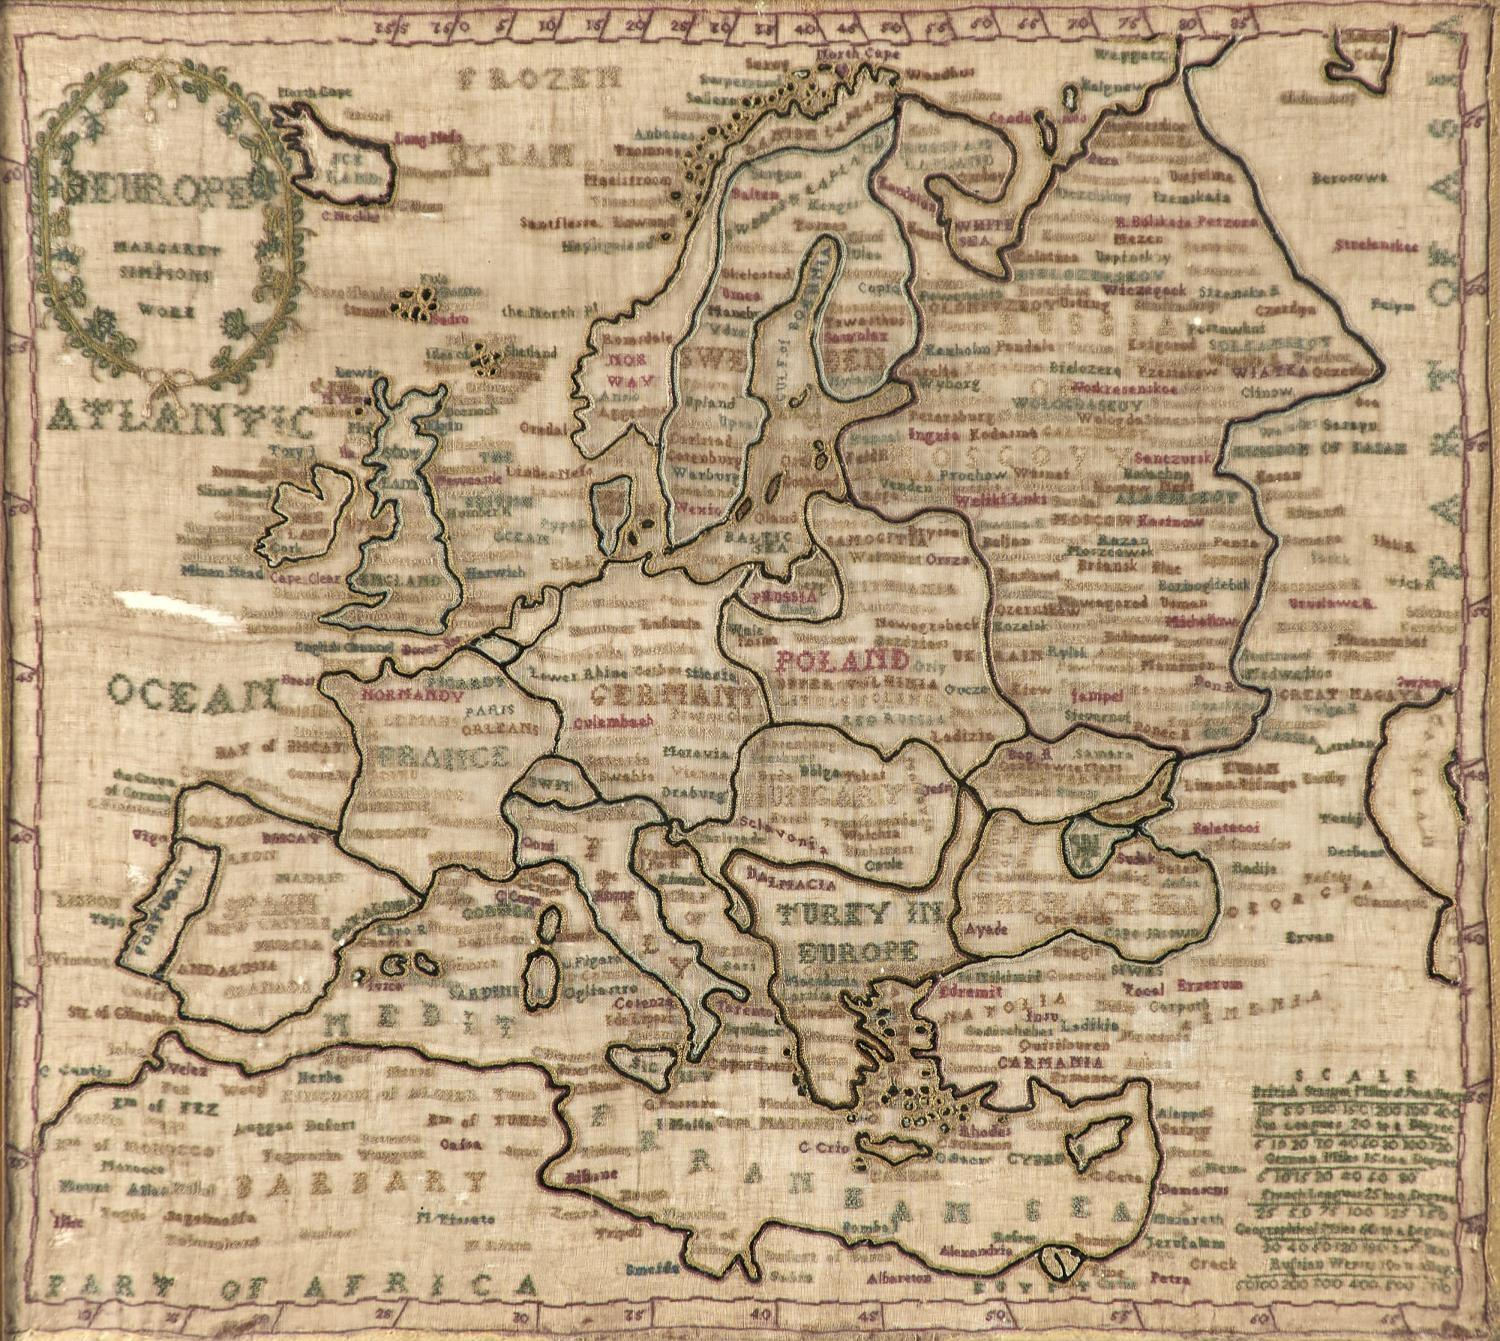 TWO ENGLISH LINEN MAP SAMPLERS OF ENDLAND AND WALES AND EUROPE, NELLIE SIMPSON'S WORK AND MARGARET